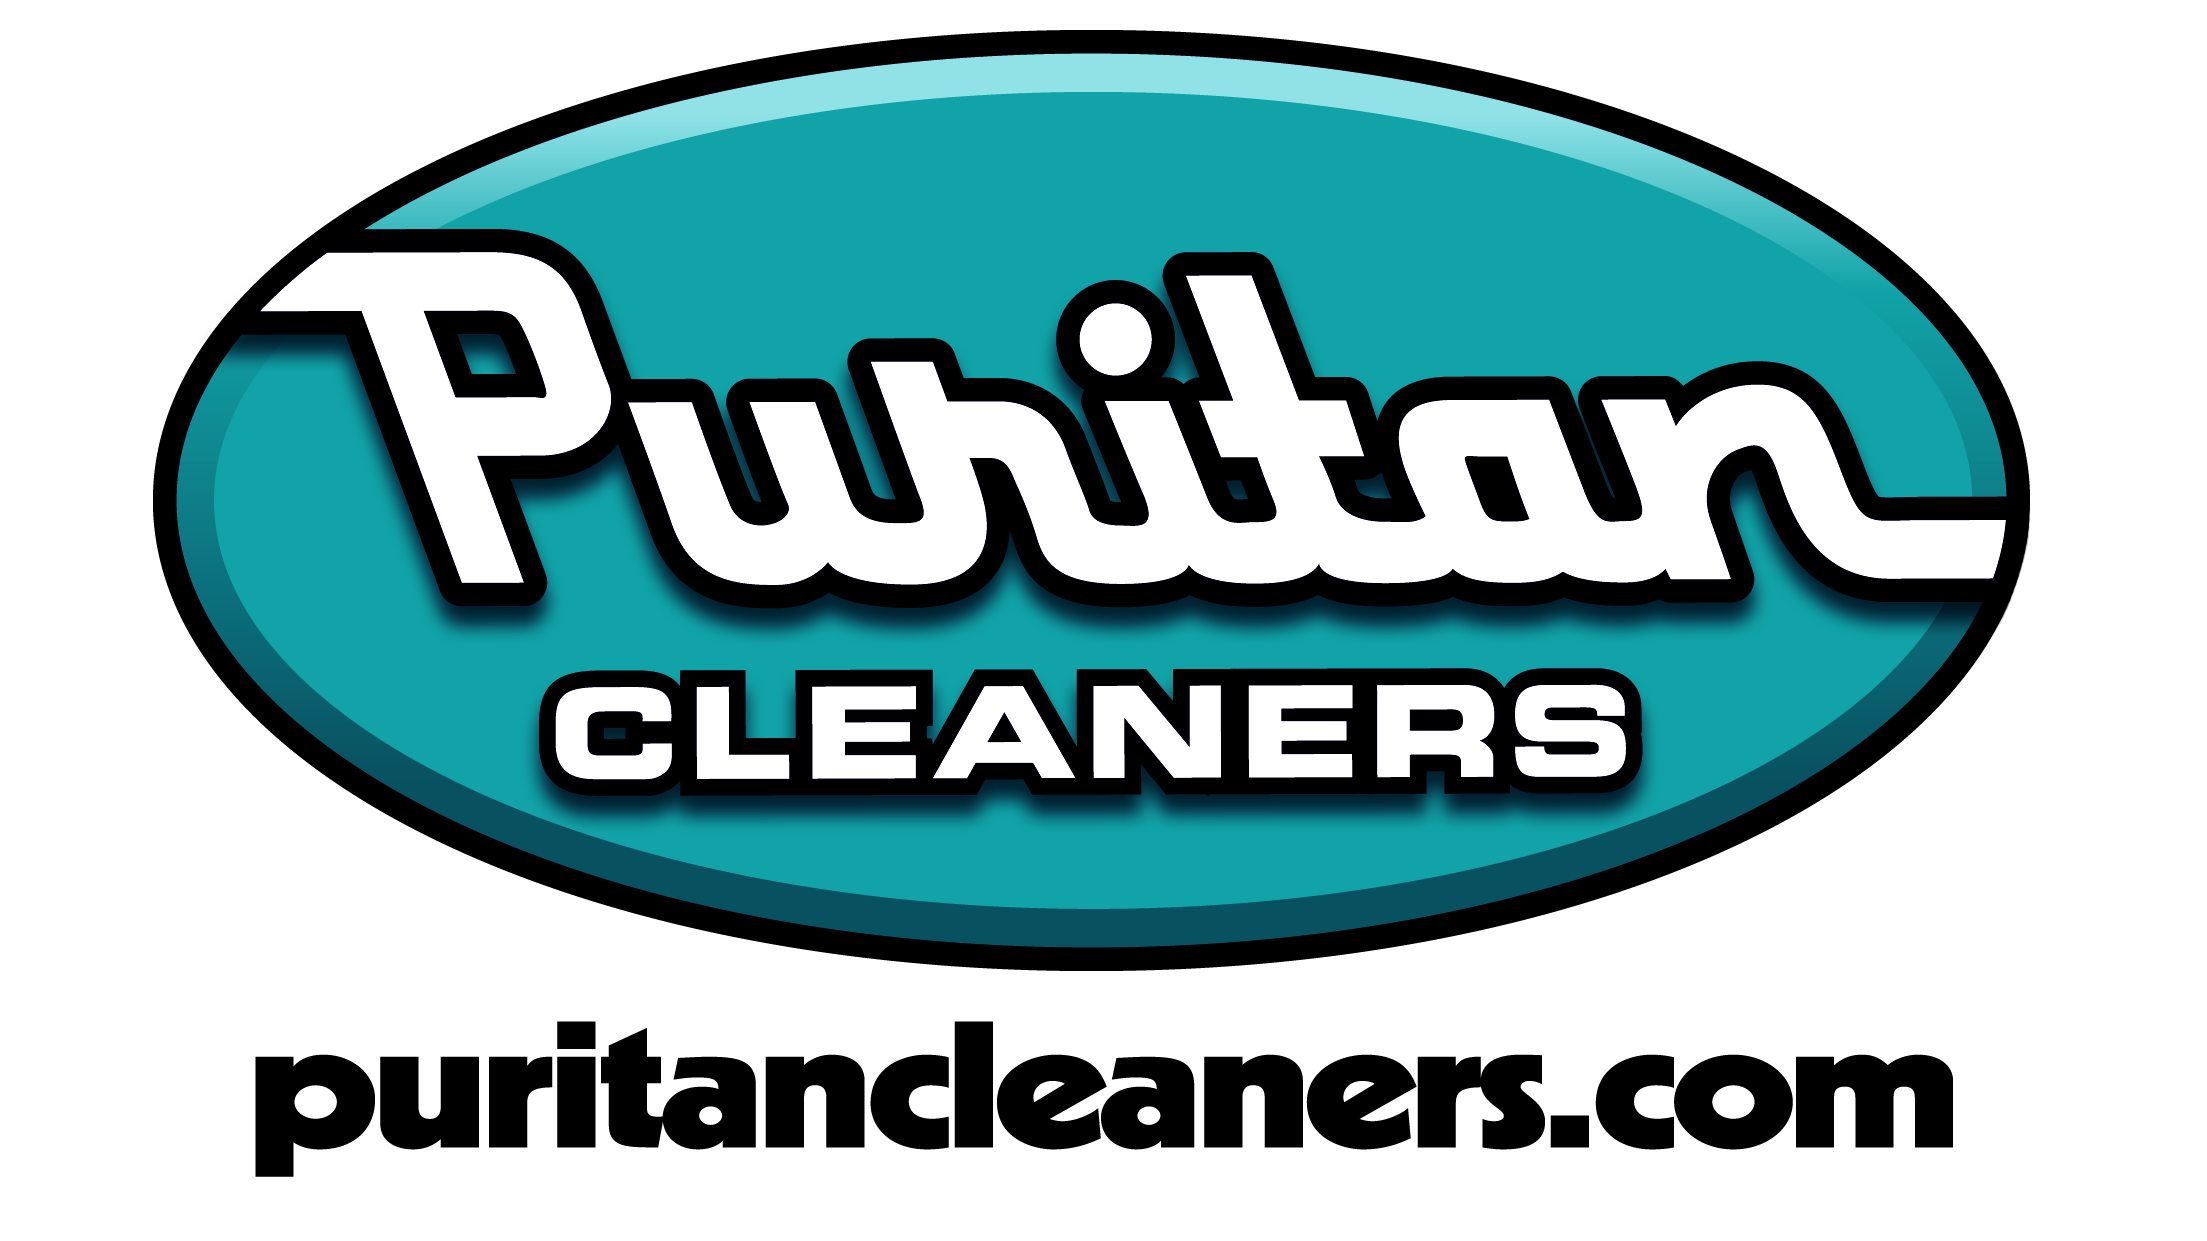 Puritan Cleaner's